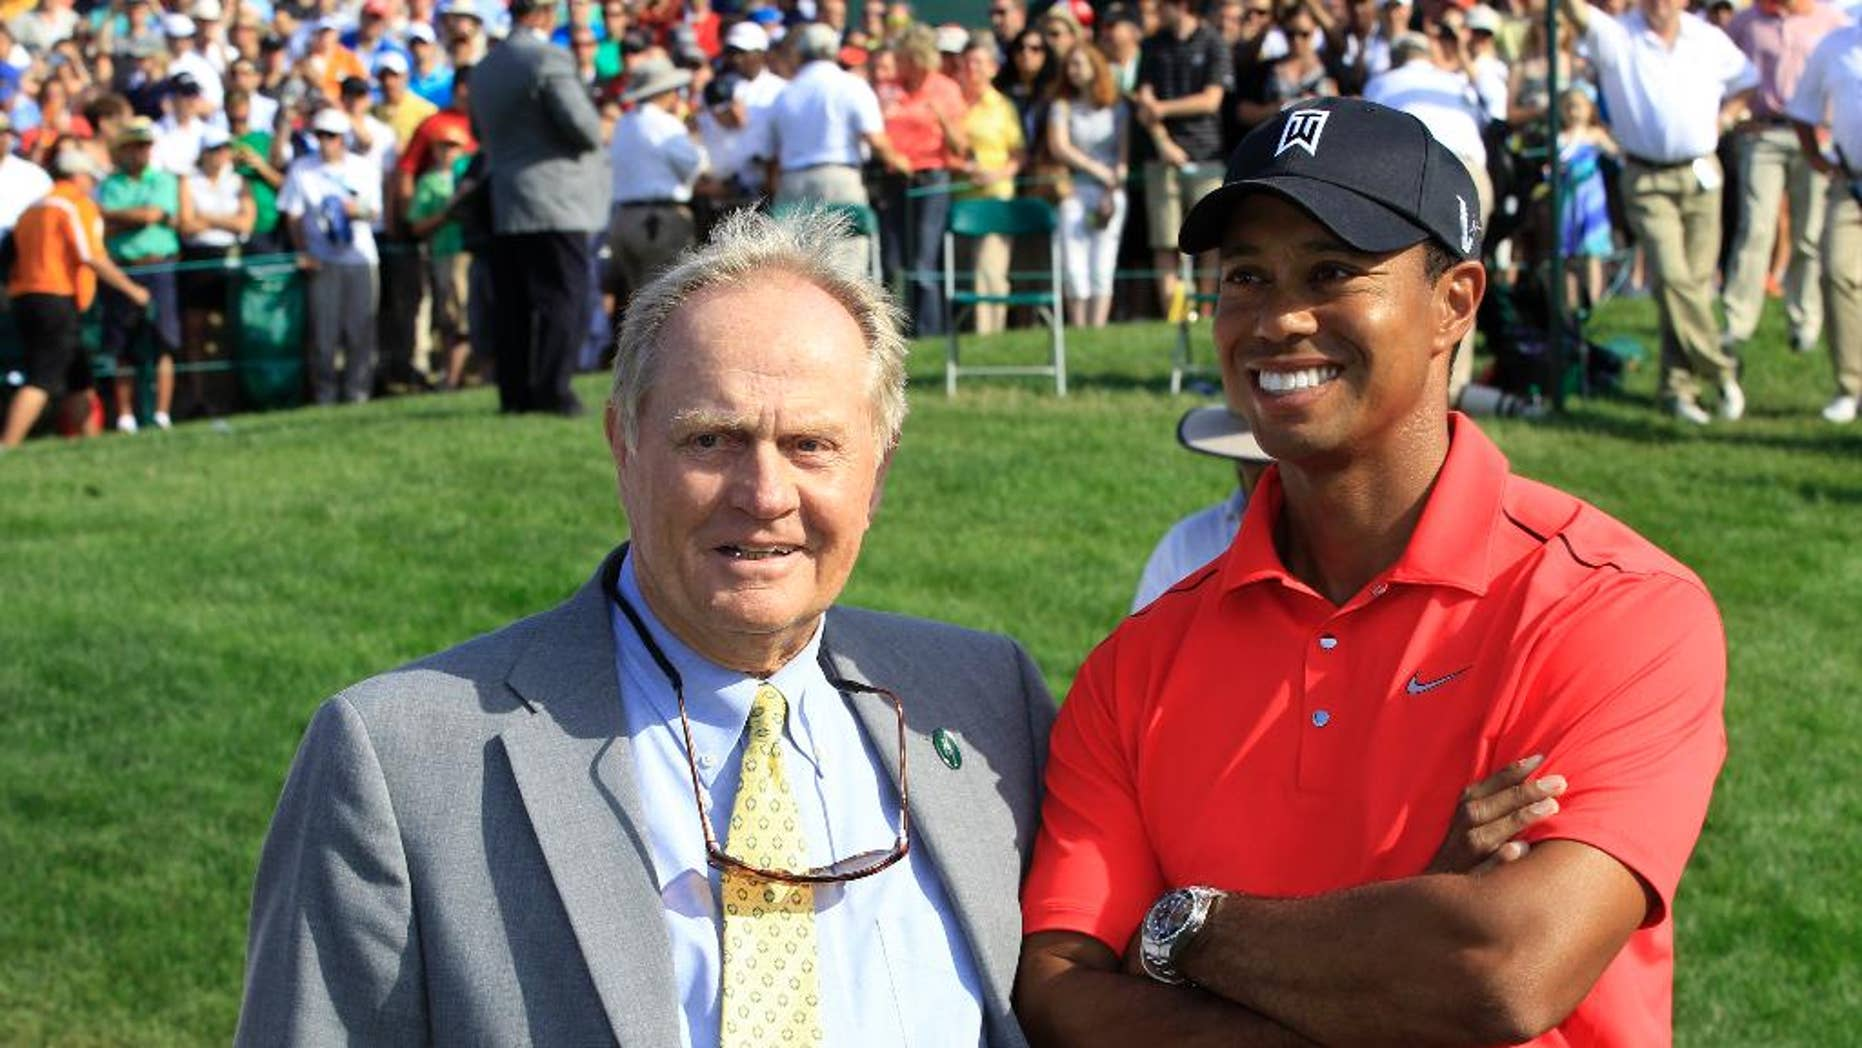 """File-This June 3, 2012, file photo shows Jack Nicklaus, left, and Tiger Woods talking after Woods won the Memorial golf tournament at the Muirfield Village Golf Club in Dublin, Ohio.  Nicklaus says he was """"painting a picture"""" when he suggested after a practice round with Tiger Woods at the 1996 Masters that Woods had the game to win at least 10 green jackets. He referred to Woods as a """"puzzle"""" on Sunday, Feb. 26, 2017, at the Honda Classic. (AP Photo/Tony Dejak, File)"""